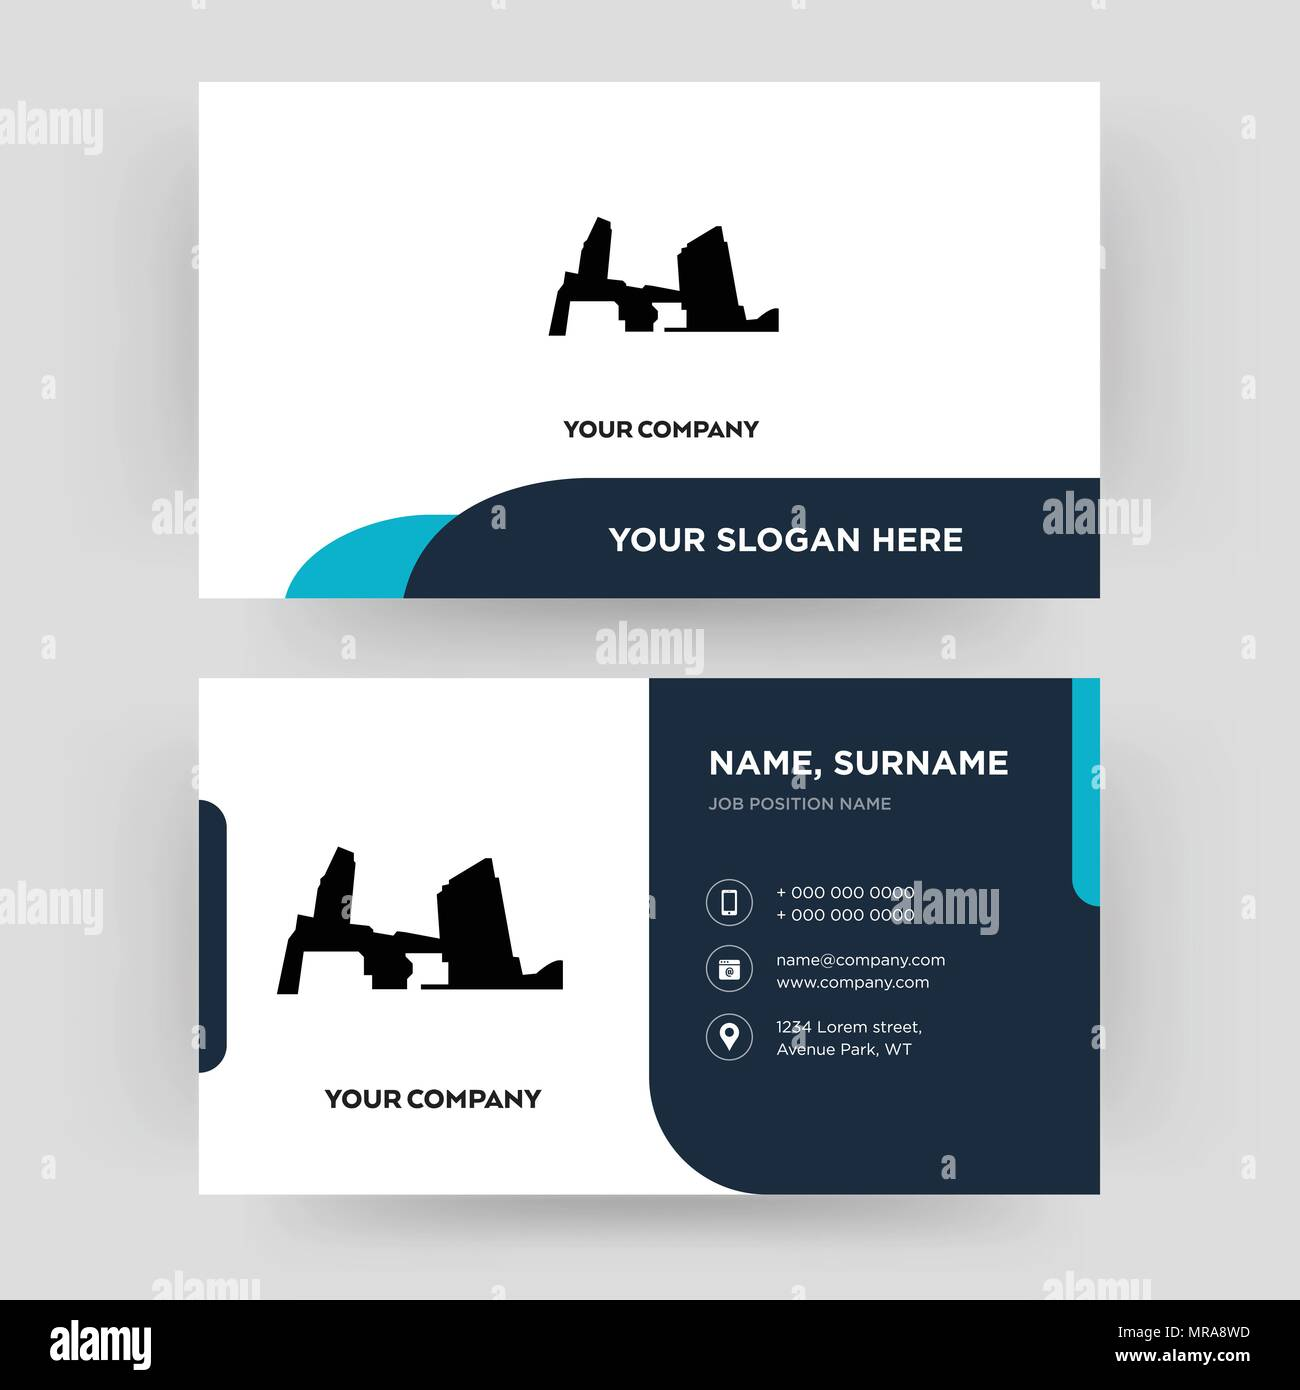 Long island business card design template visiting for your long island business card design template visiting for your company modern creative and clean identity card vector reheart Image collections